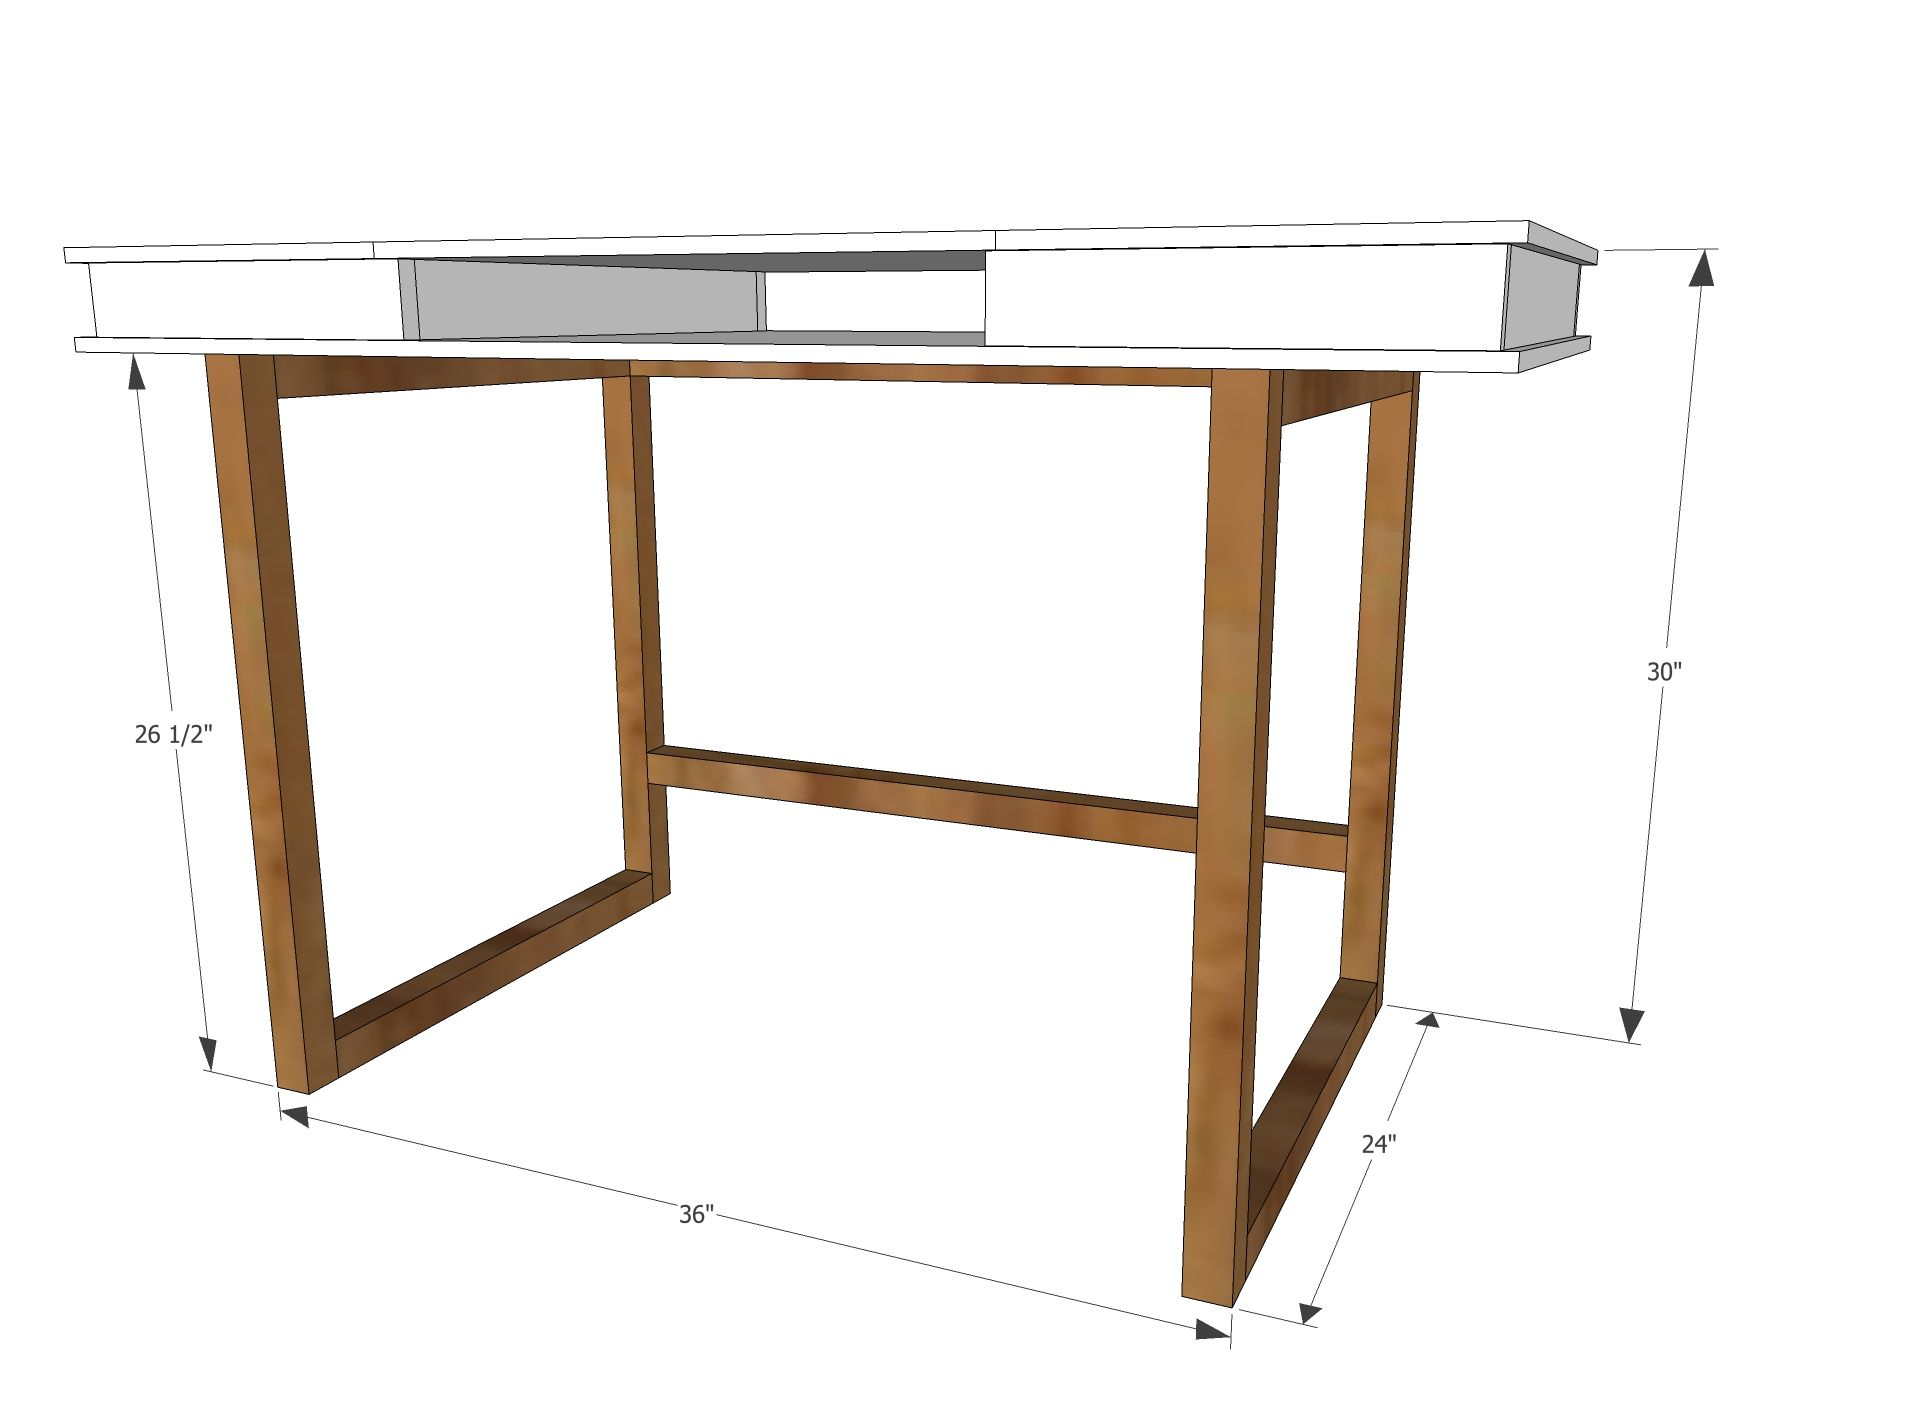 Modern Furniture Plans Ana White Build A Modern 2x2 Desk Base For Build Your Own Study